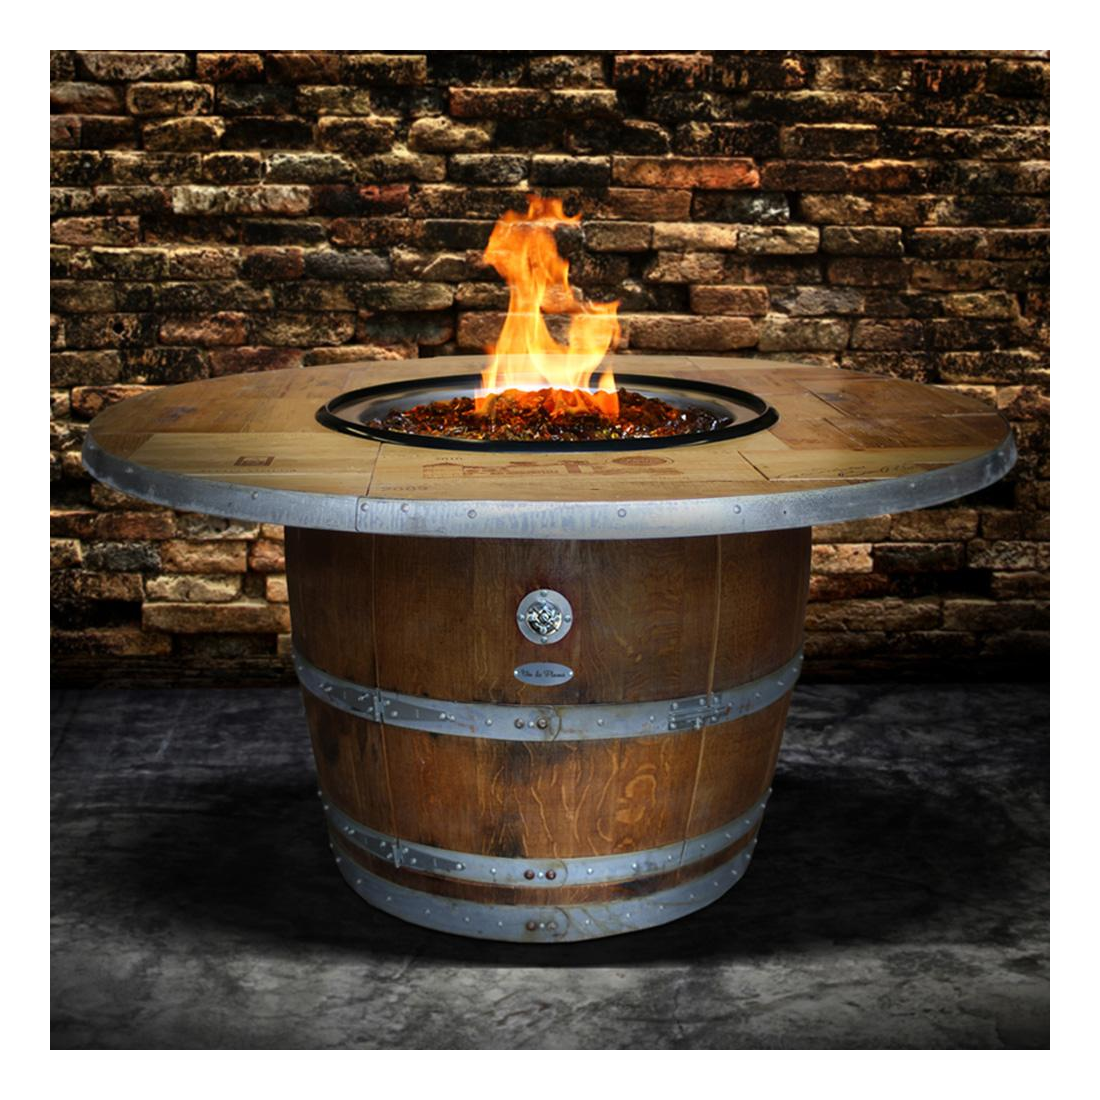 A wine barrel fire pit ignited and ready for guests